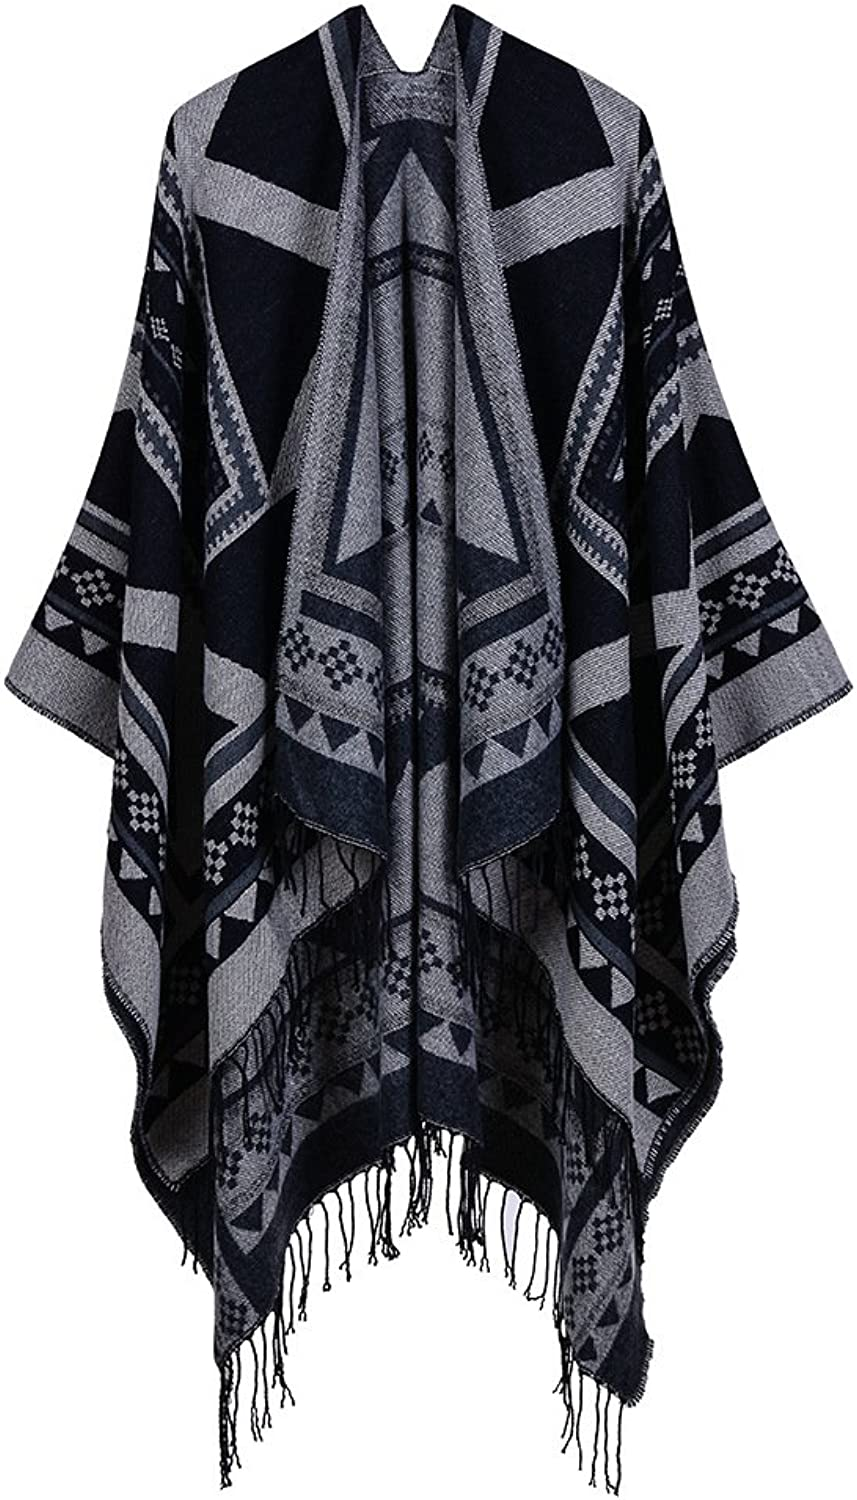 Shawl Cloak Warm Scarf Slit Shawl Geometric Pattern with Tassels Long Thick Shawl for Lady in Autumn and Winter